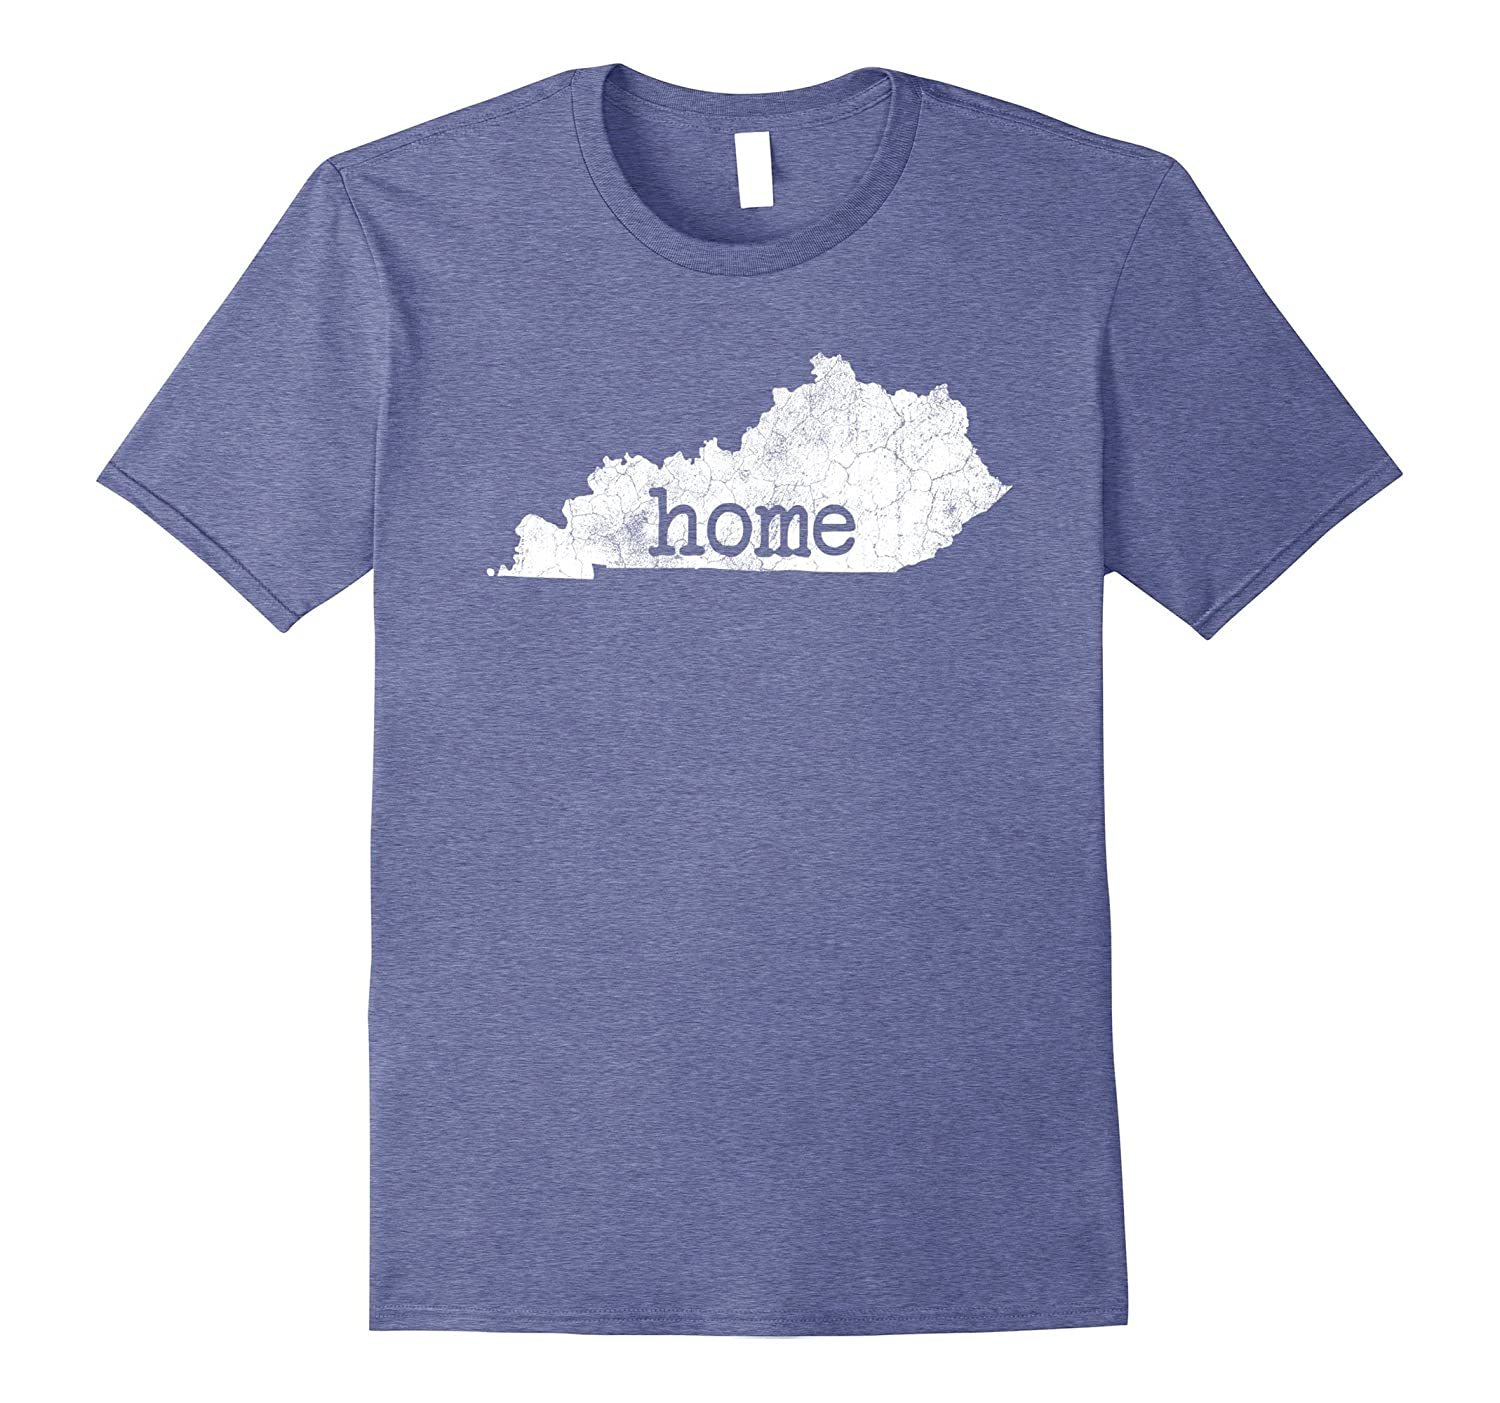 Top Distressed Kentucky Home Shirt Kentucky Shirt Christmas